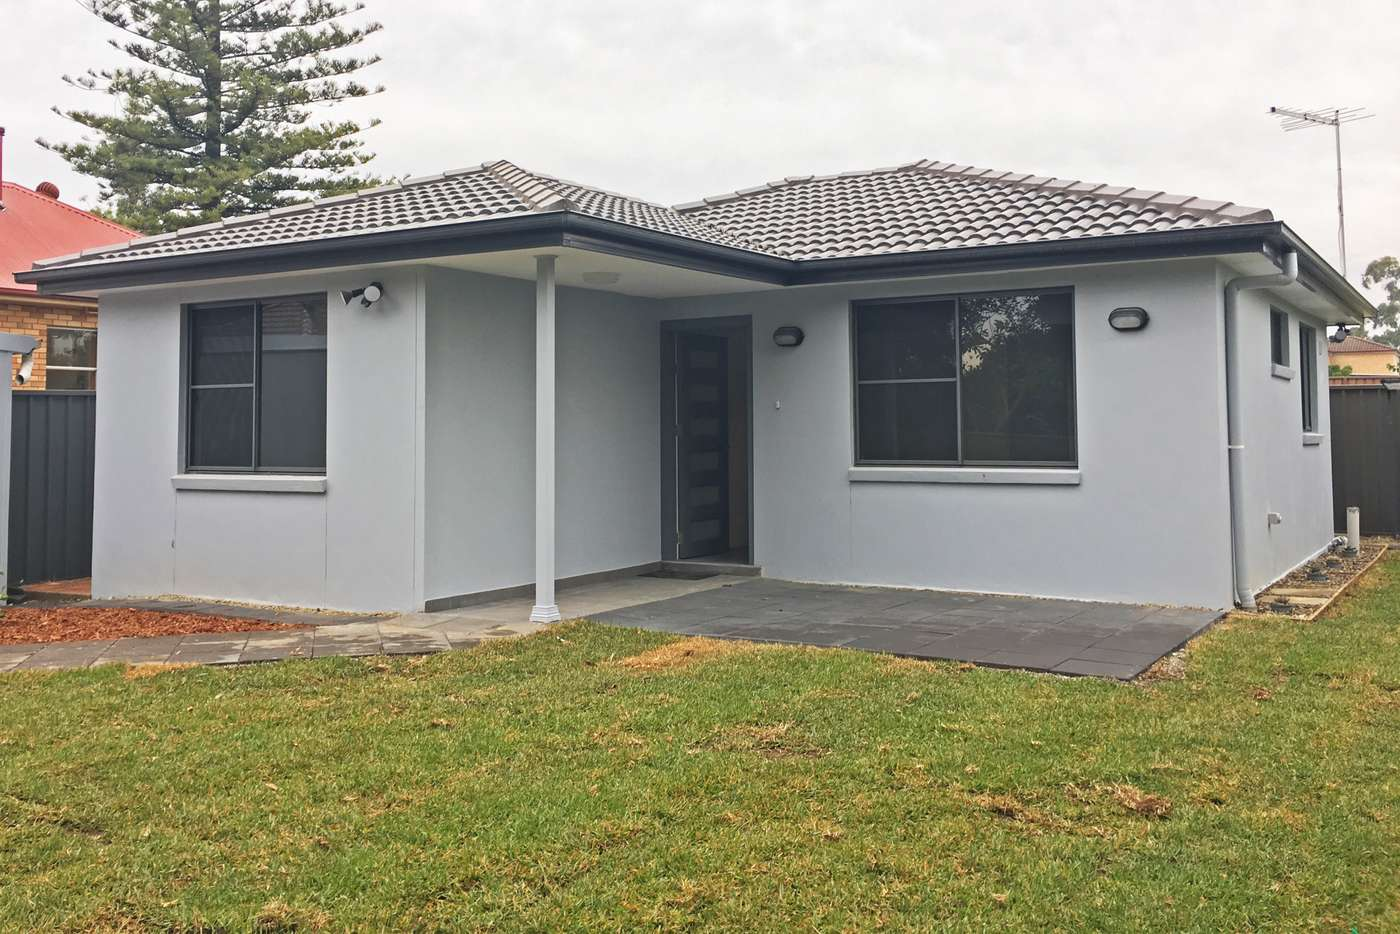 Main view of Homely house listing, 32a Carrington St, Seven Hills NSW 2147